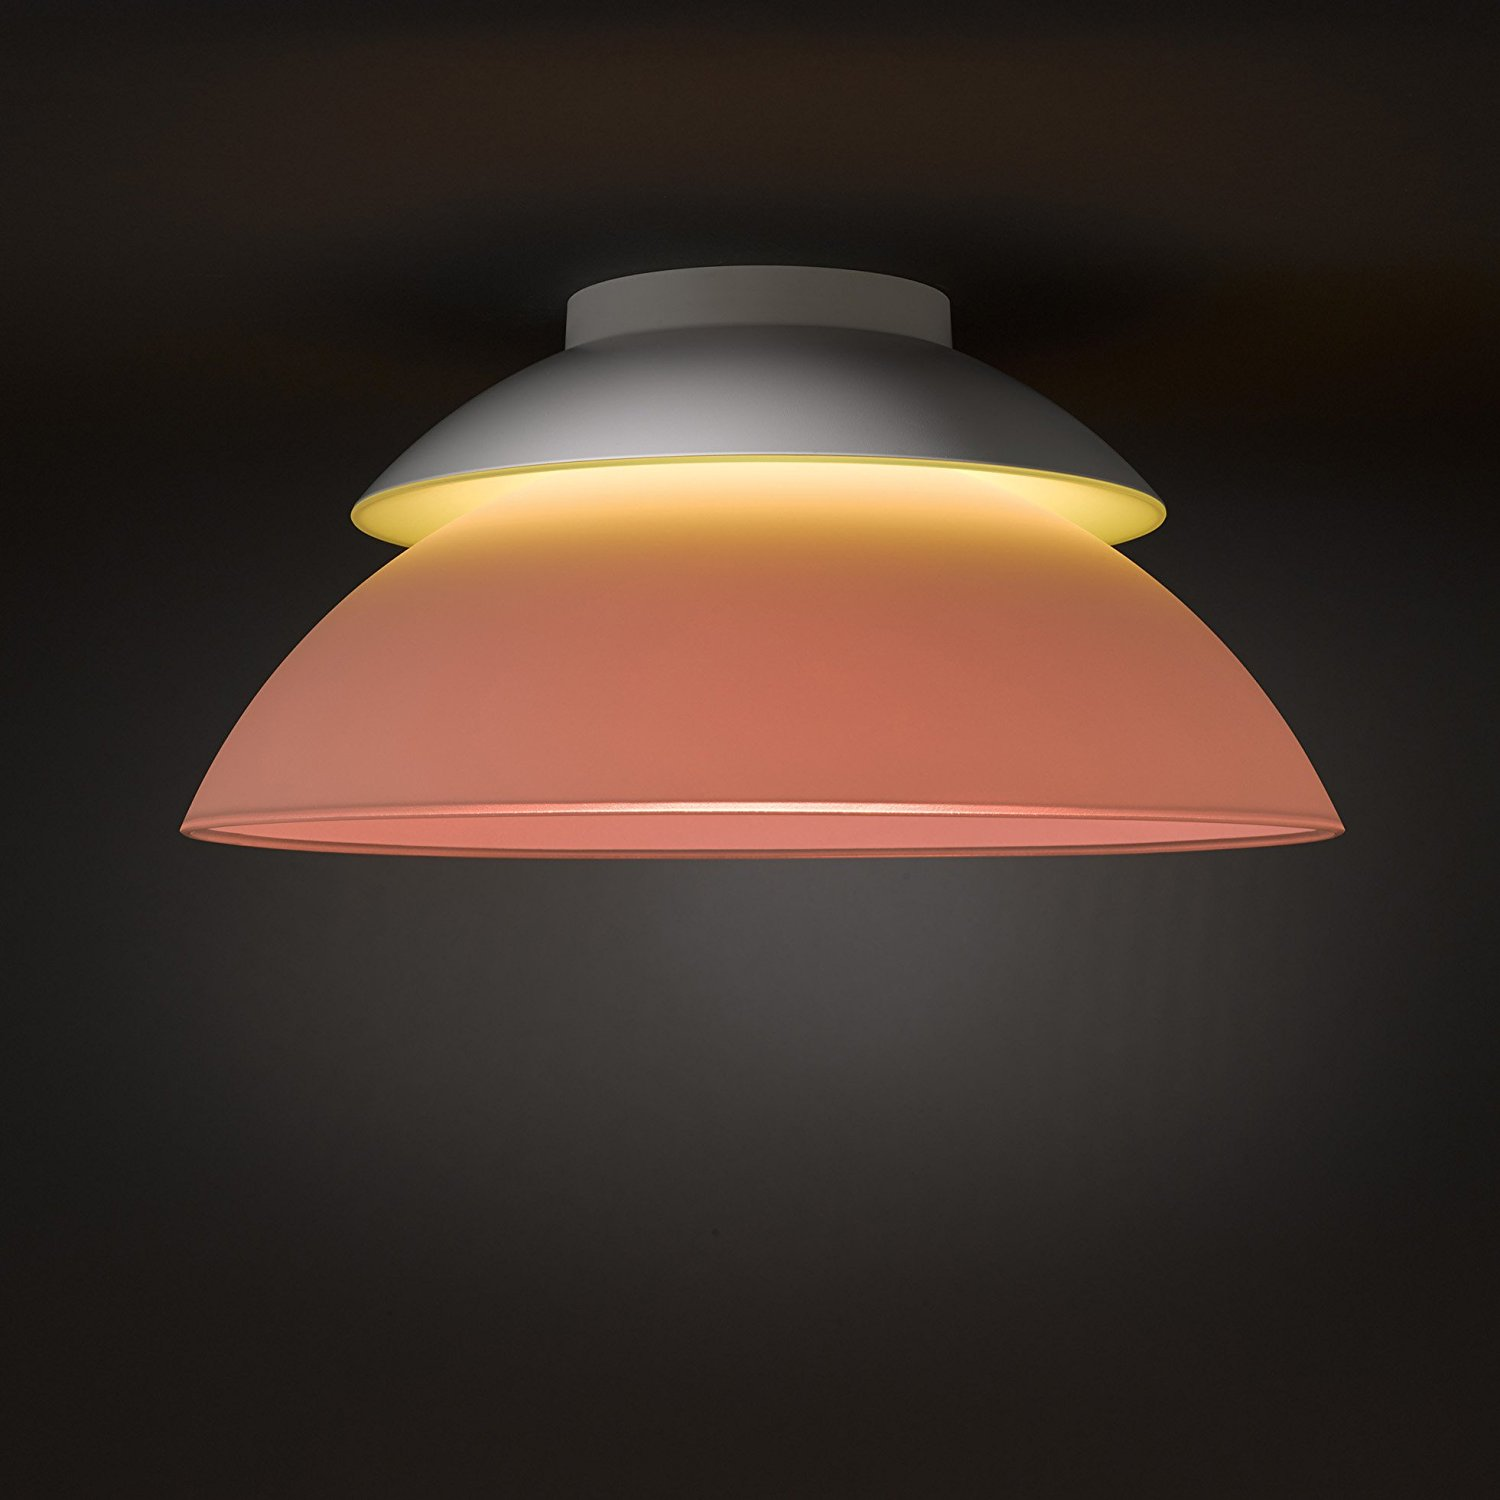 Led Lampen E27 10 Watt Philips Hue Supported Lights And Devices Iconnecthue